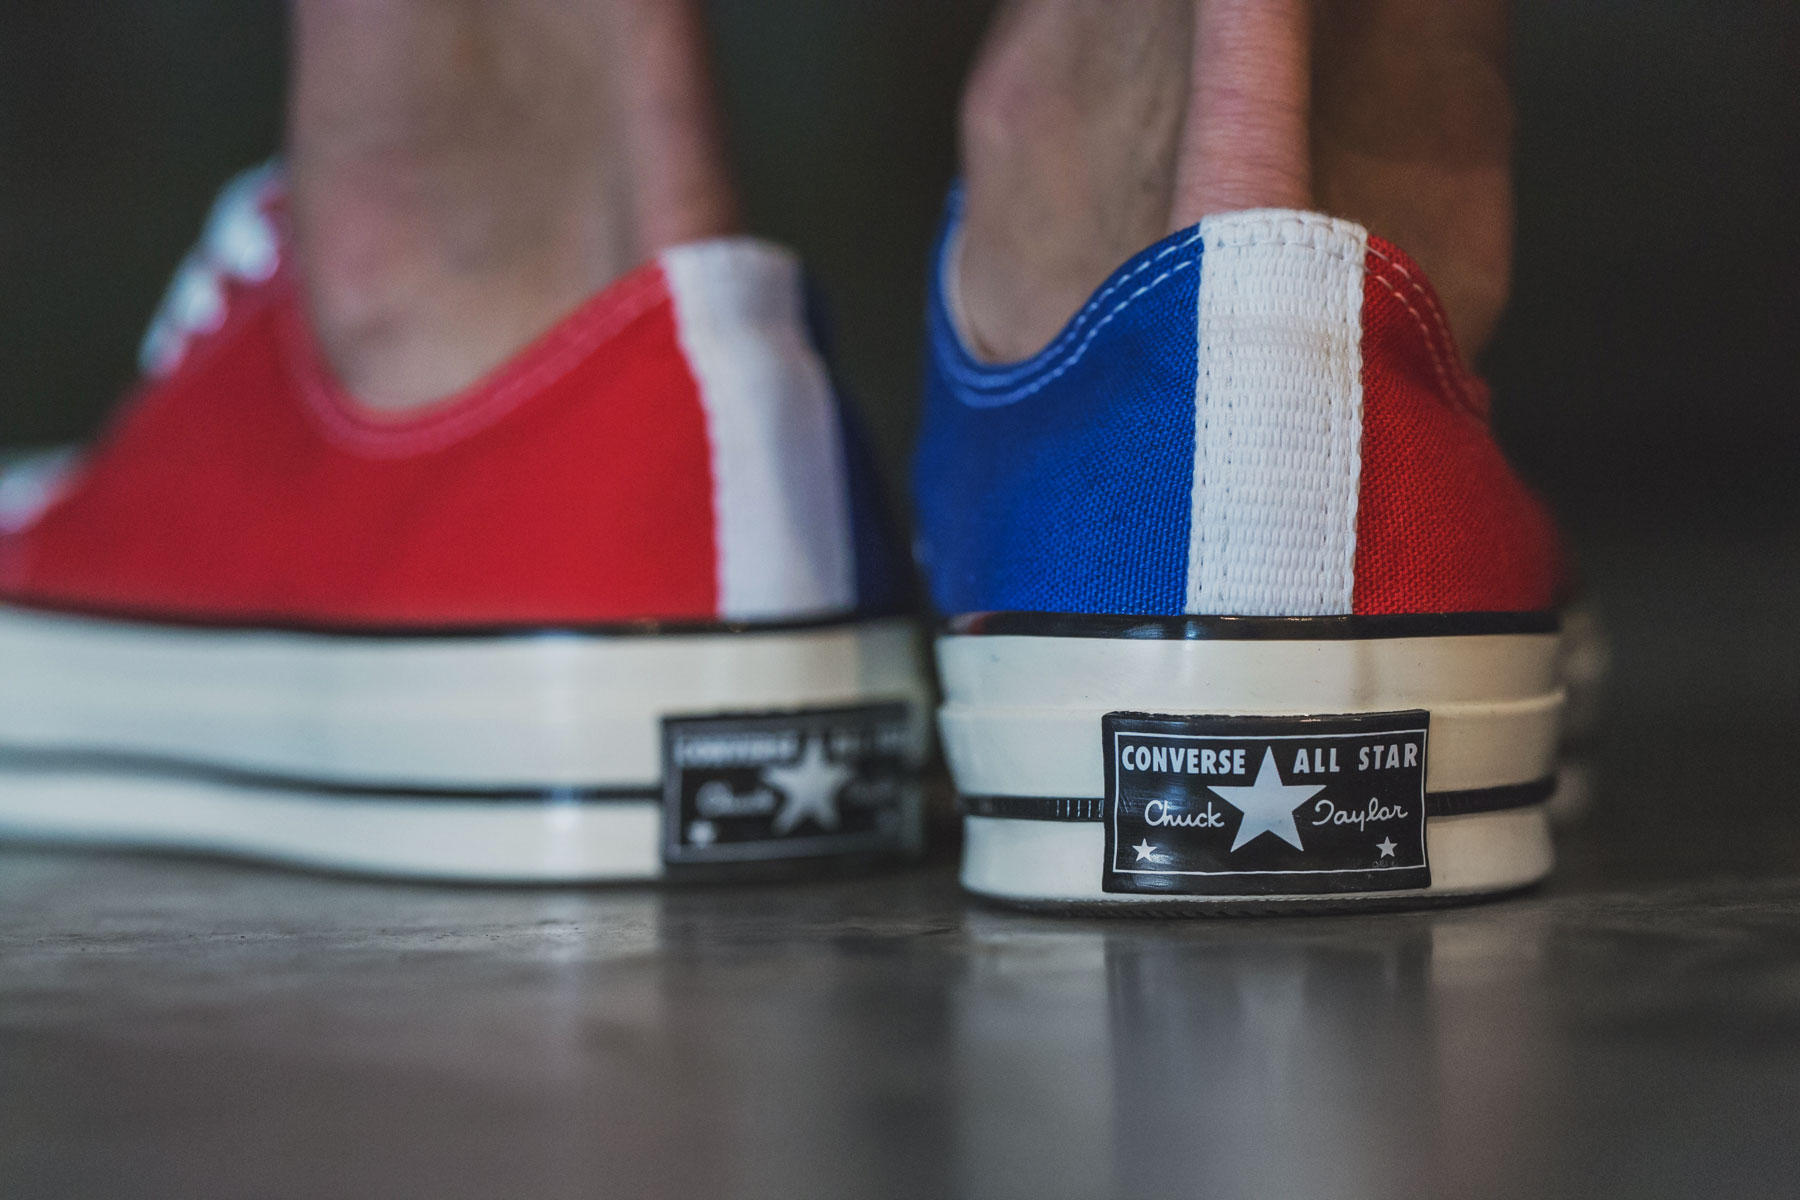 converse 2014 chuck taylor all star 70 panel